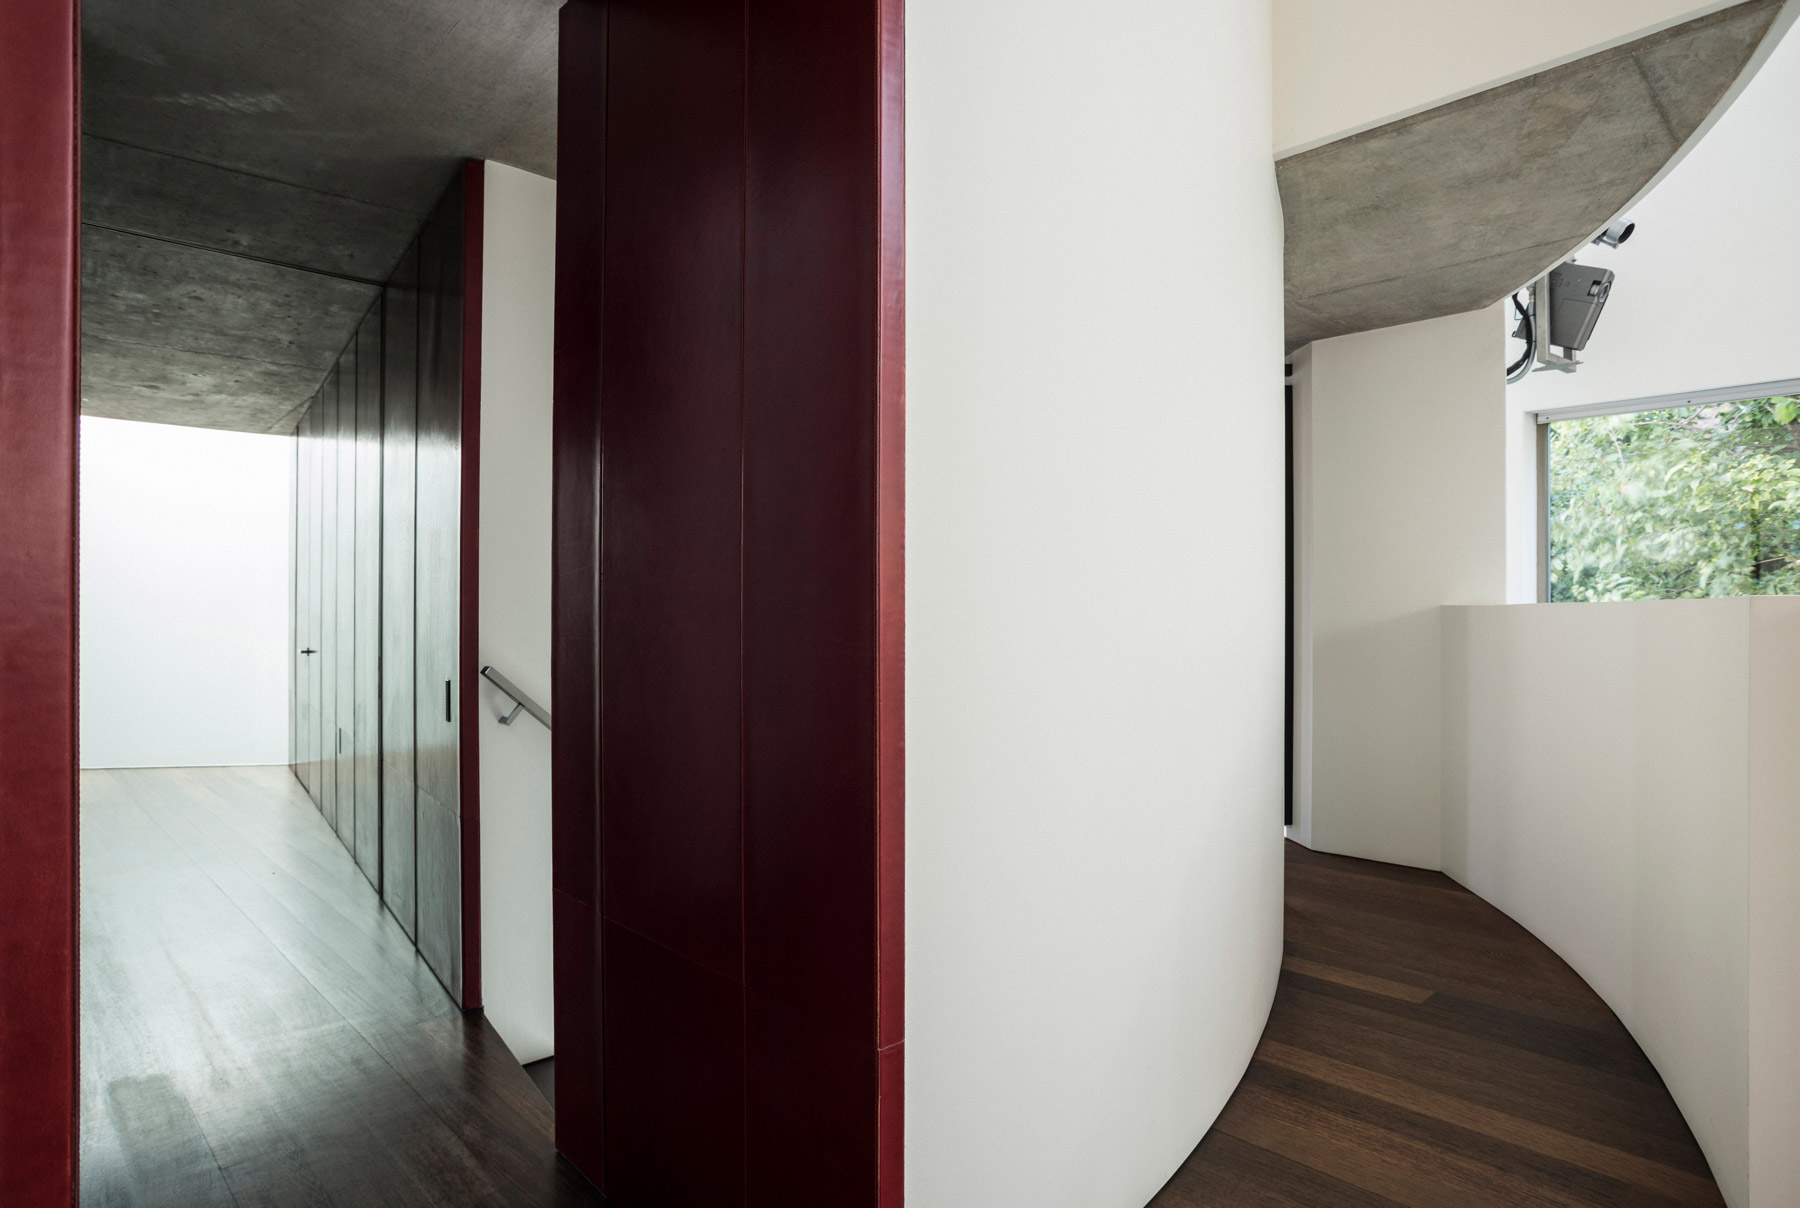 The hallway of the house, showing an alternative view of the vegetable-tanned saddlebacks.